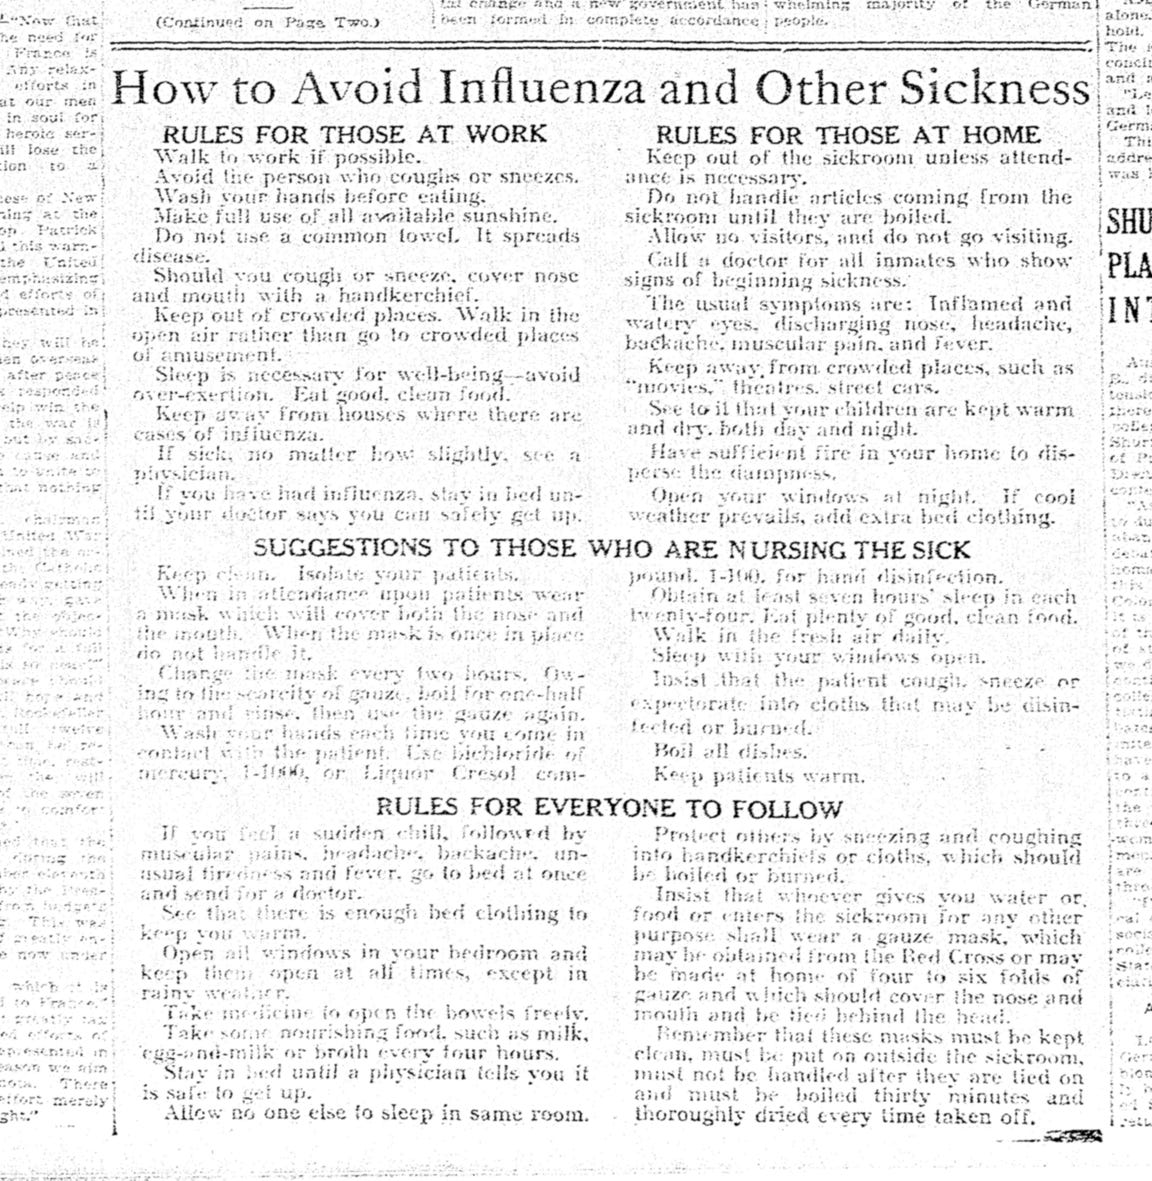 On Tuesday, Oct. 22, 1918, the Corpus Christi Caller ran a list of measures to avoid influenza and care for the sick during the 1918 influenza pandemic.